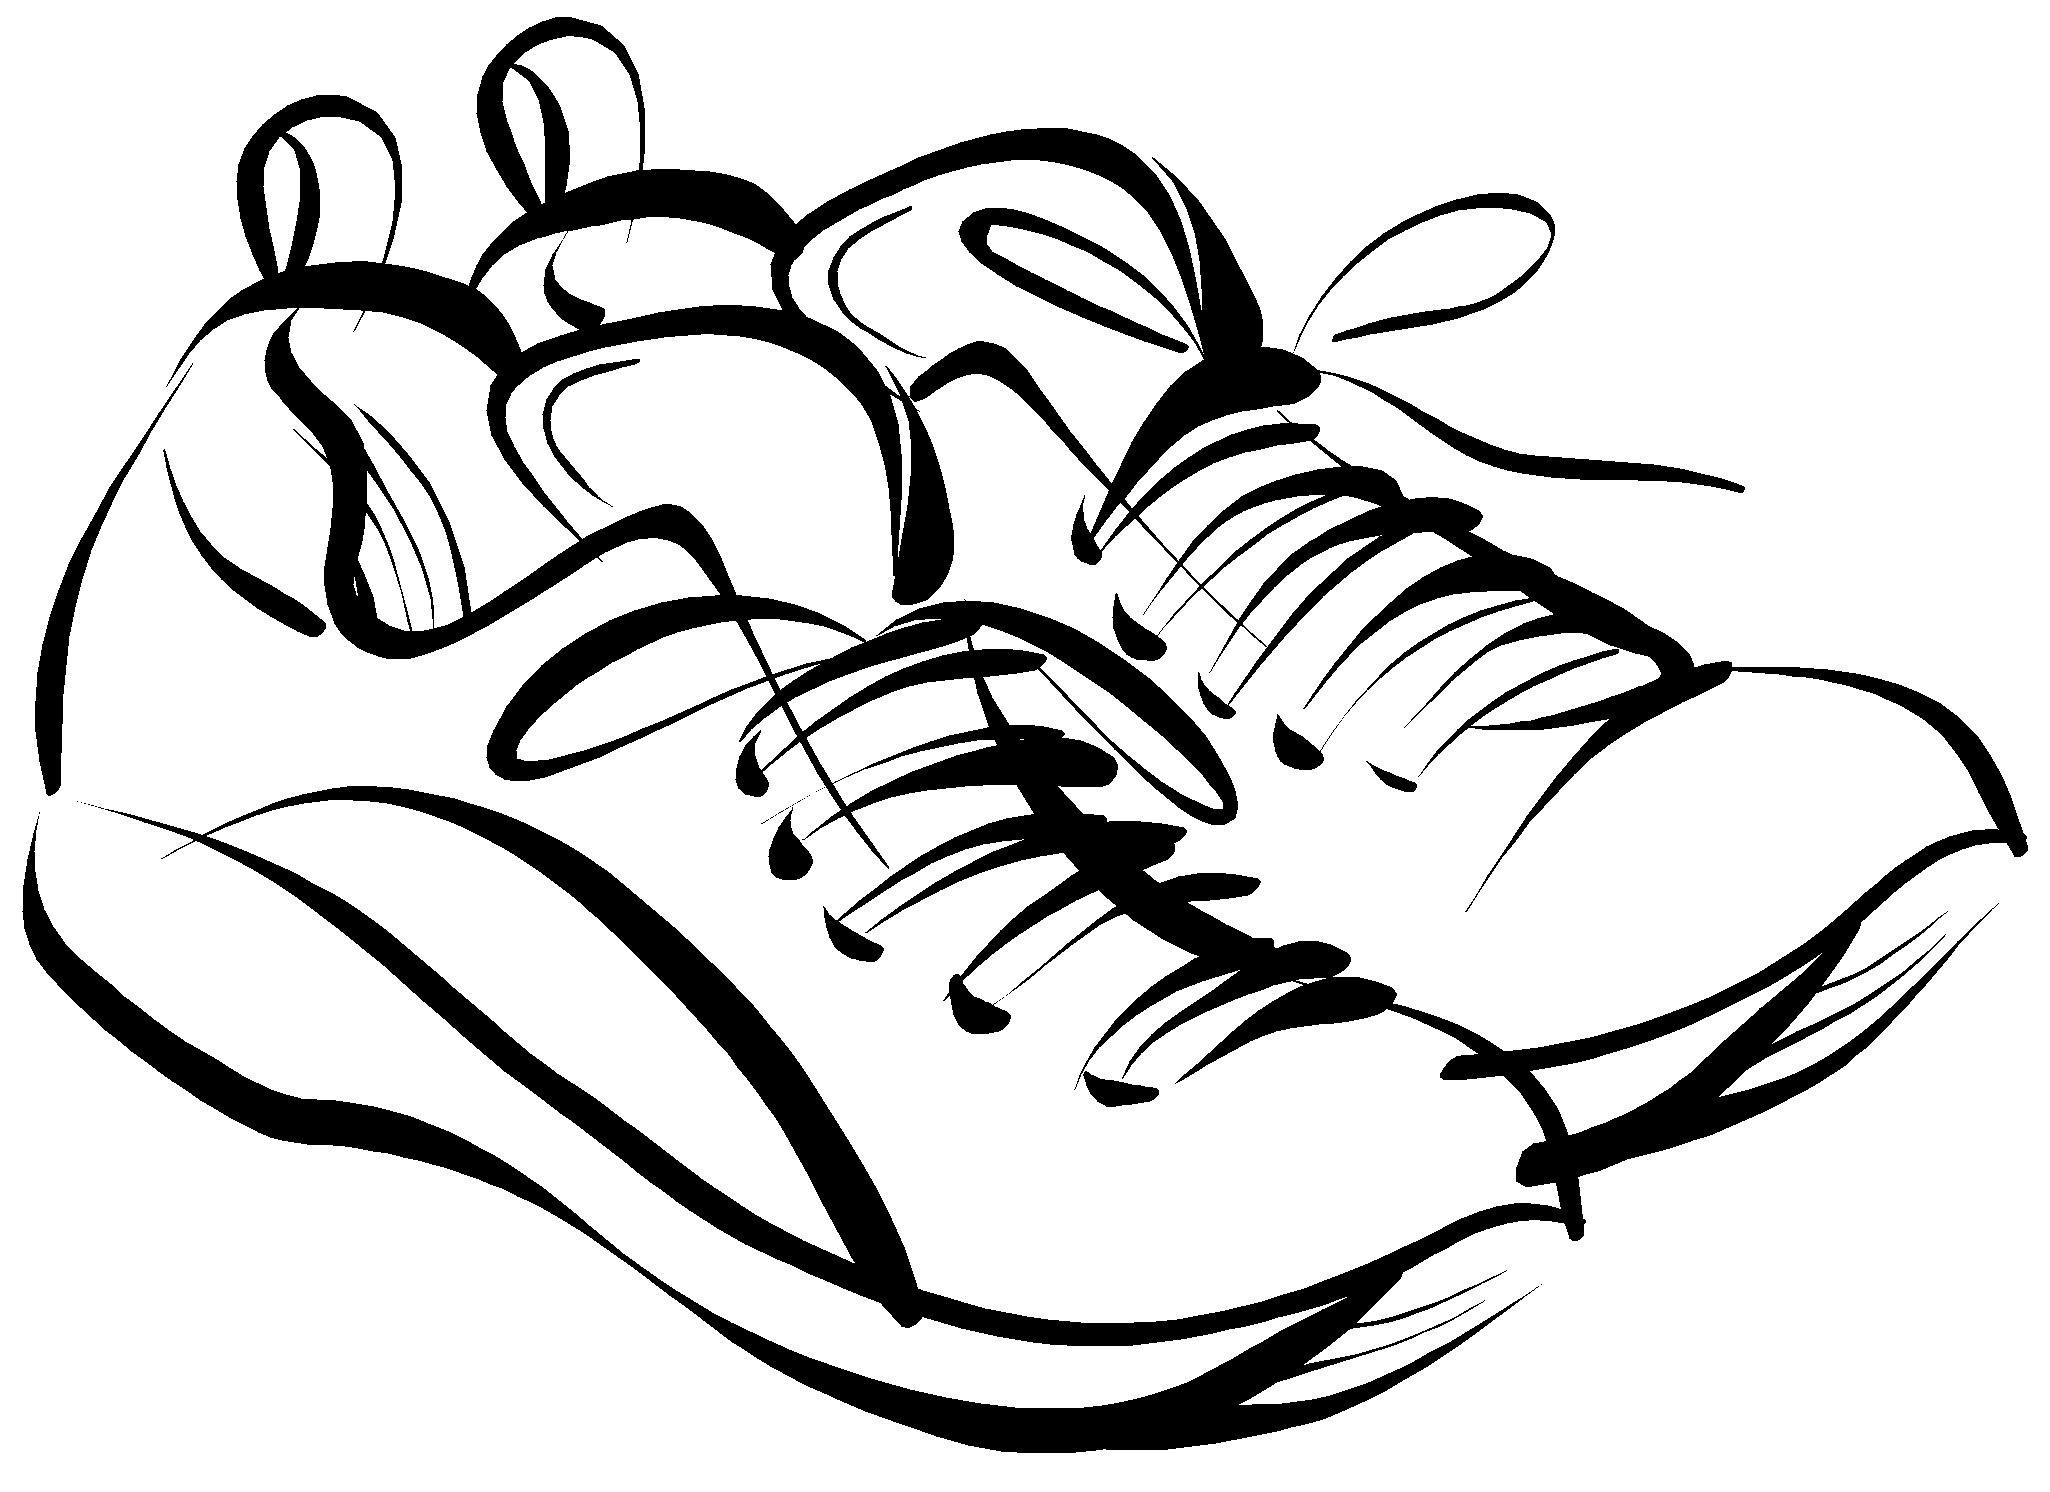 Tennis shoes clipart black and white free 4 2